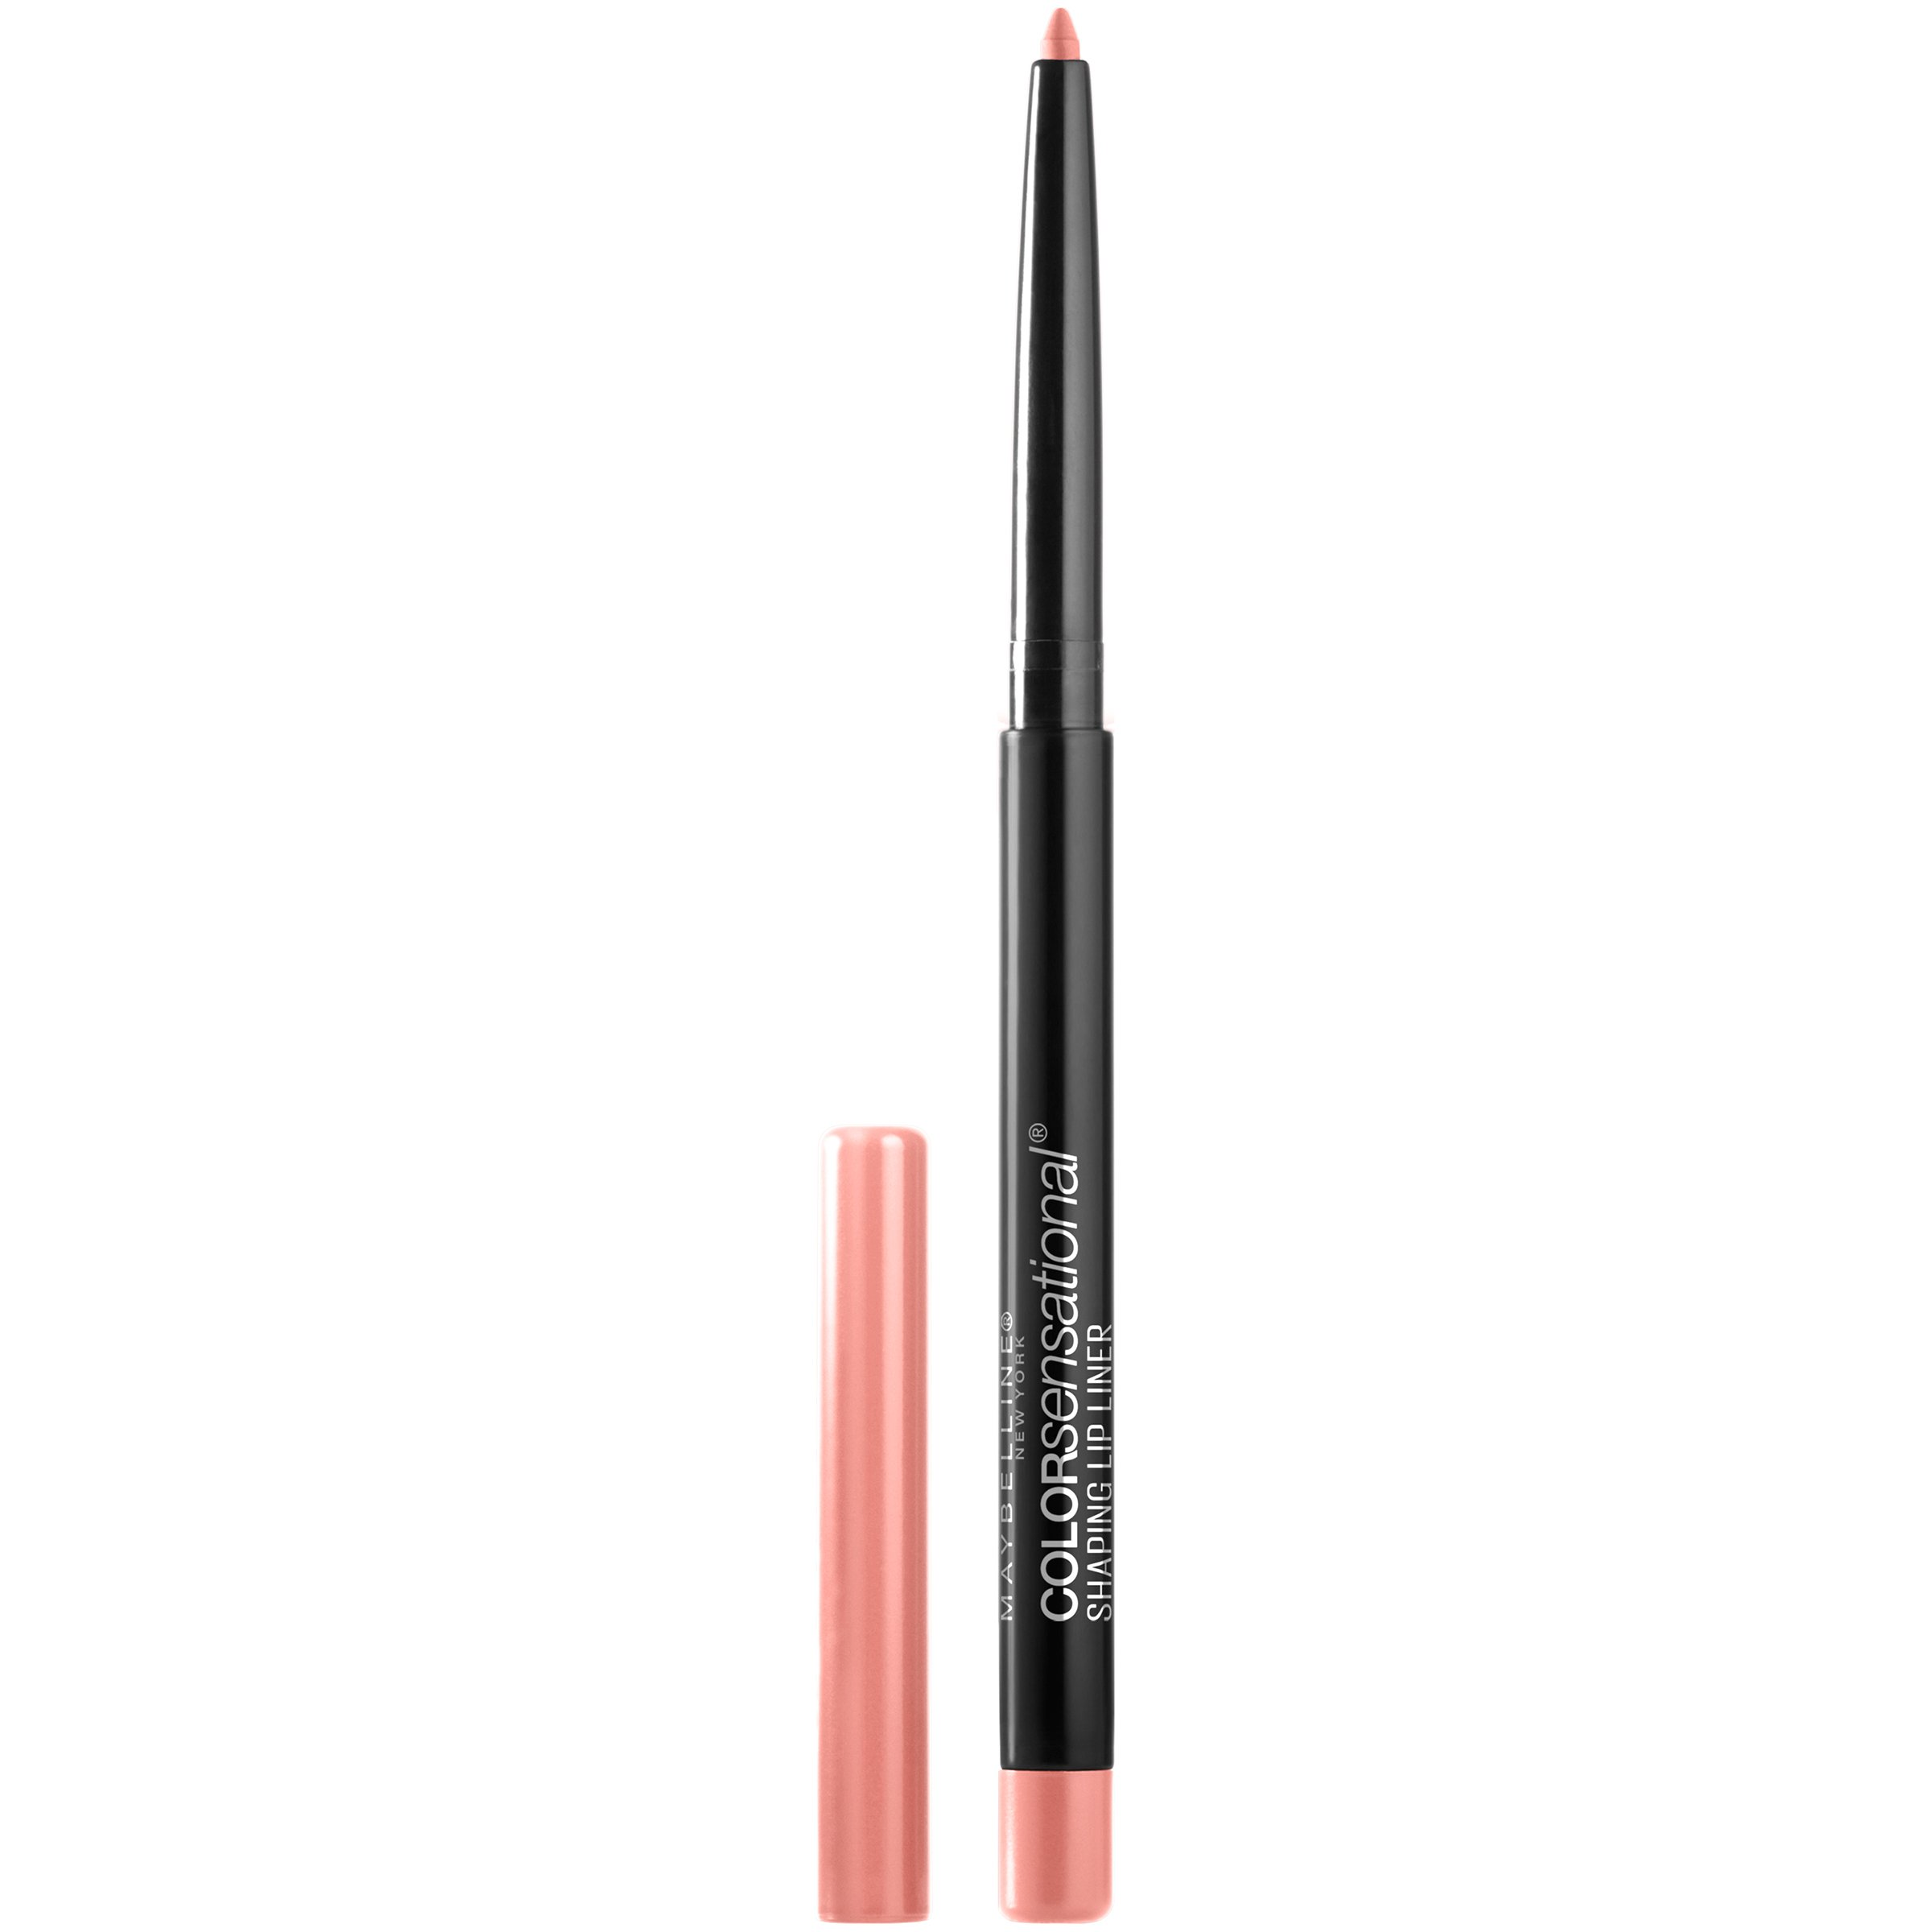 Maybelline Makeup Color Sensational Shaping Lip Liner, Purely Nude, Nude Lip Liner, 0.01 oz